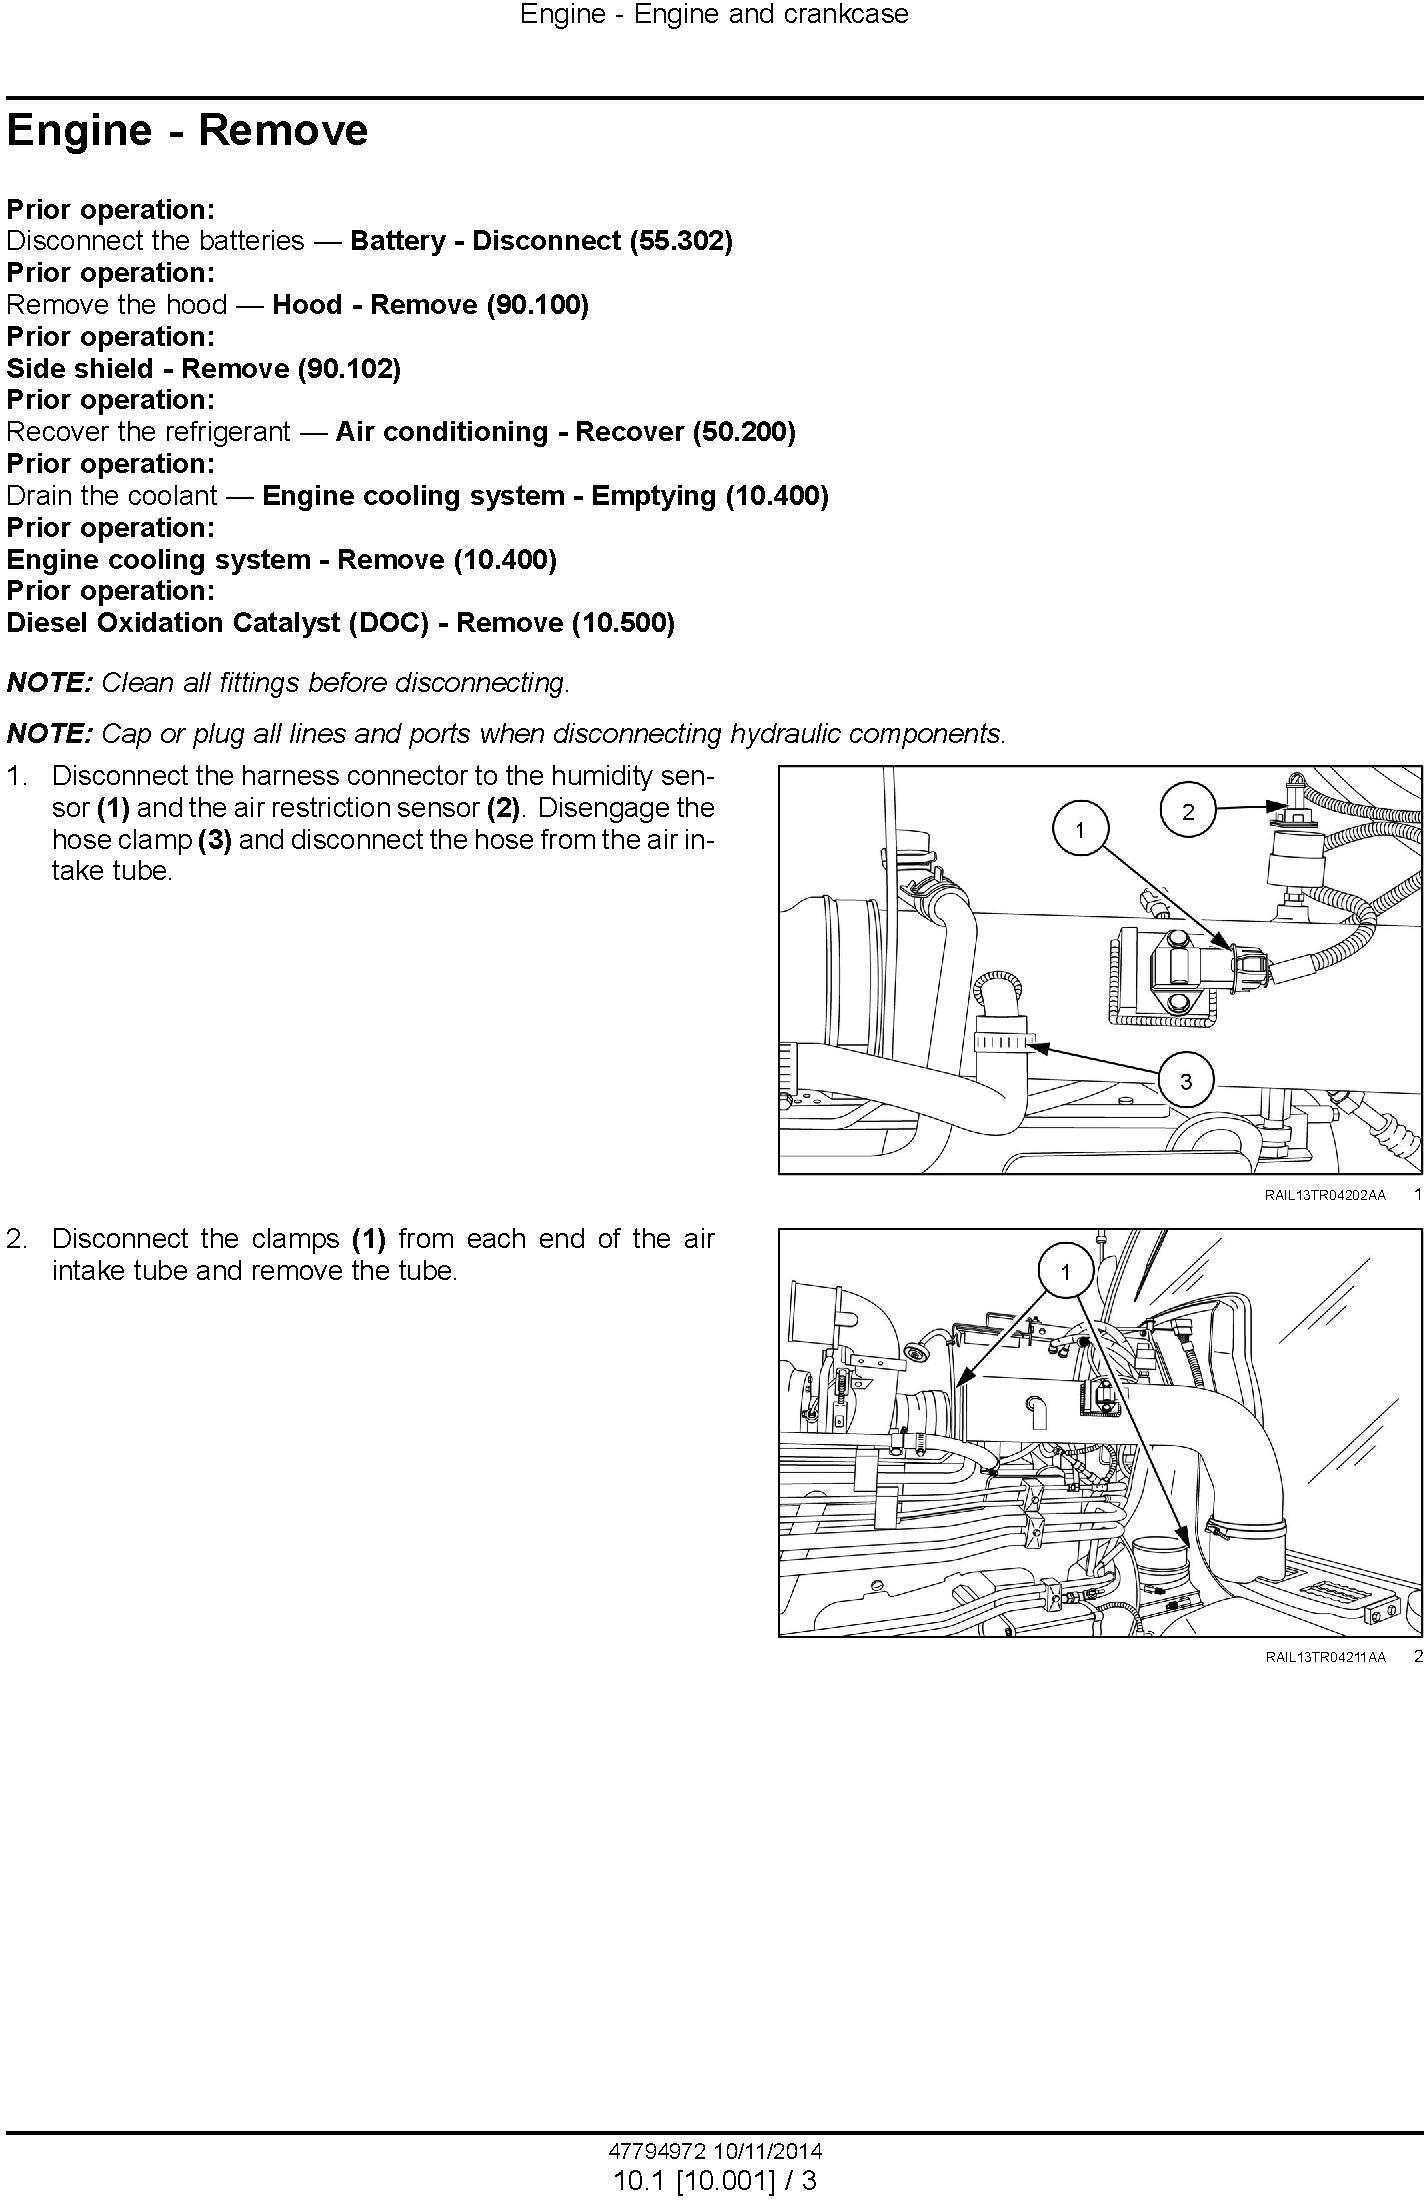 New Holland T8.320, T8.350, T8.380, T8.410 with Powershift Transmission Tractor Service Manual (EU) - 1